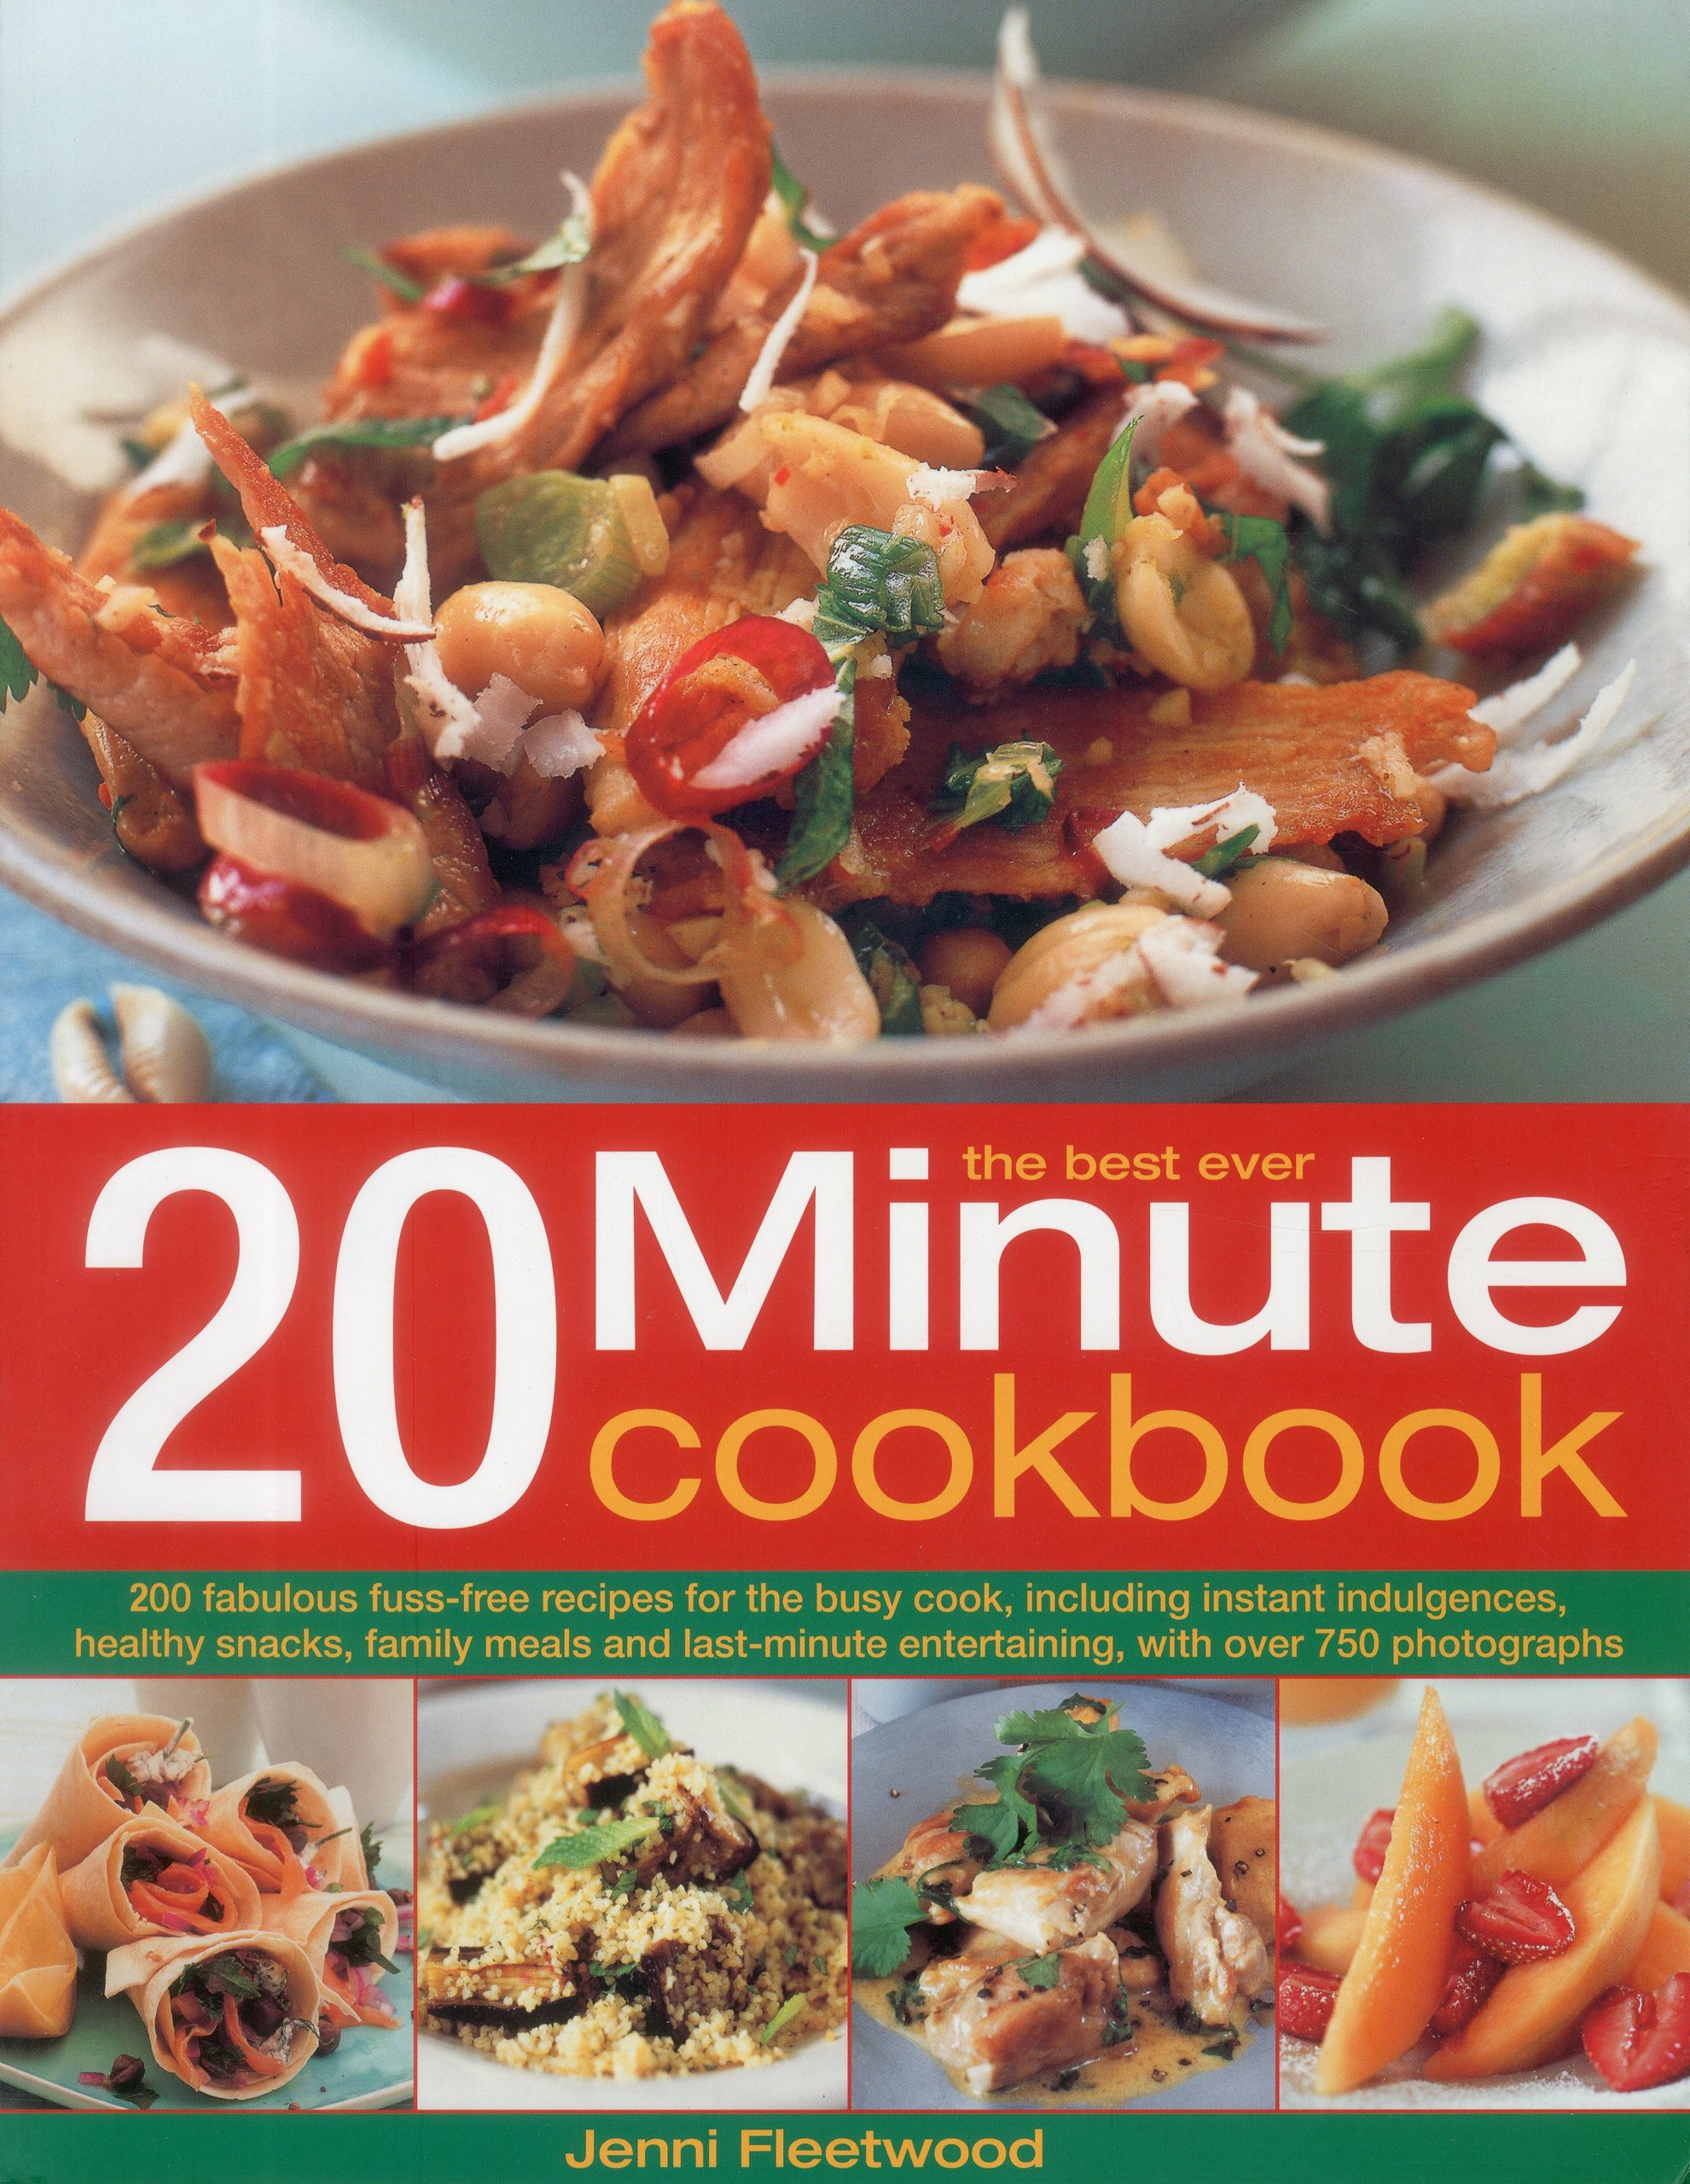 Download The Best Ever 20 Minute Cookbook: 200 fabulous fuss-free recipes for the busy cook, with over 800 step-by-step photographs PDF